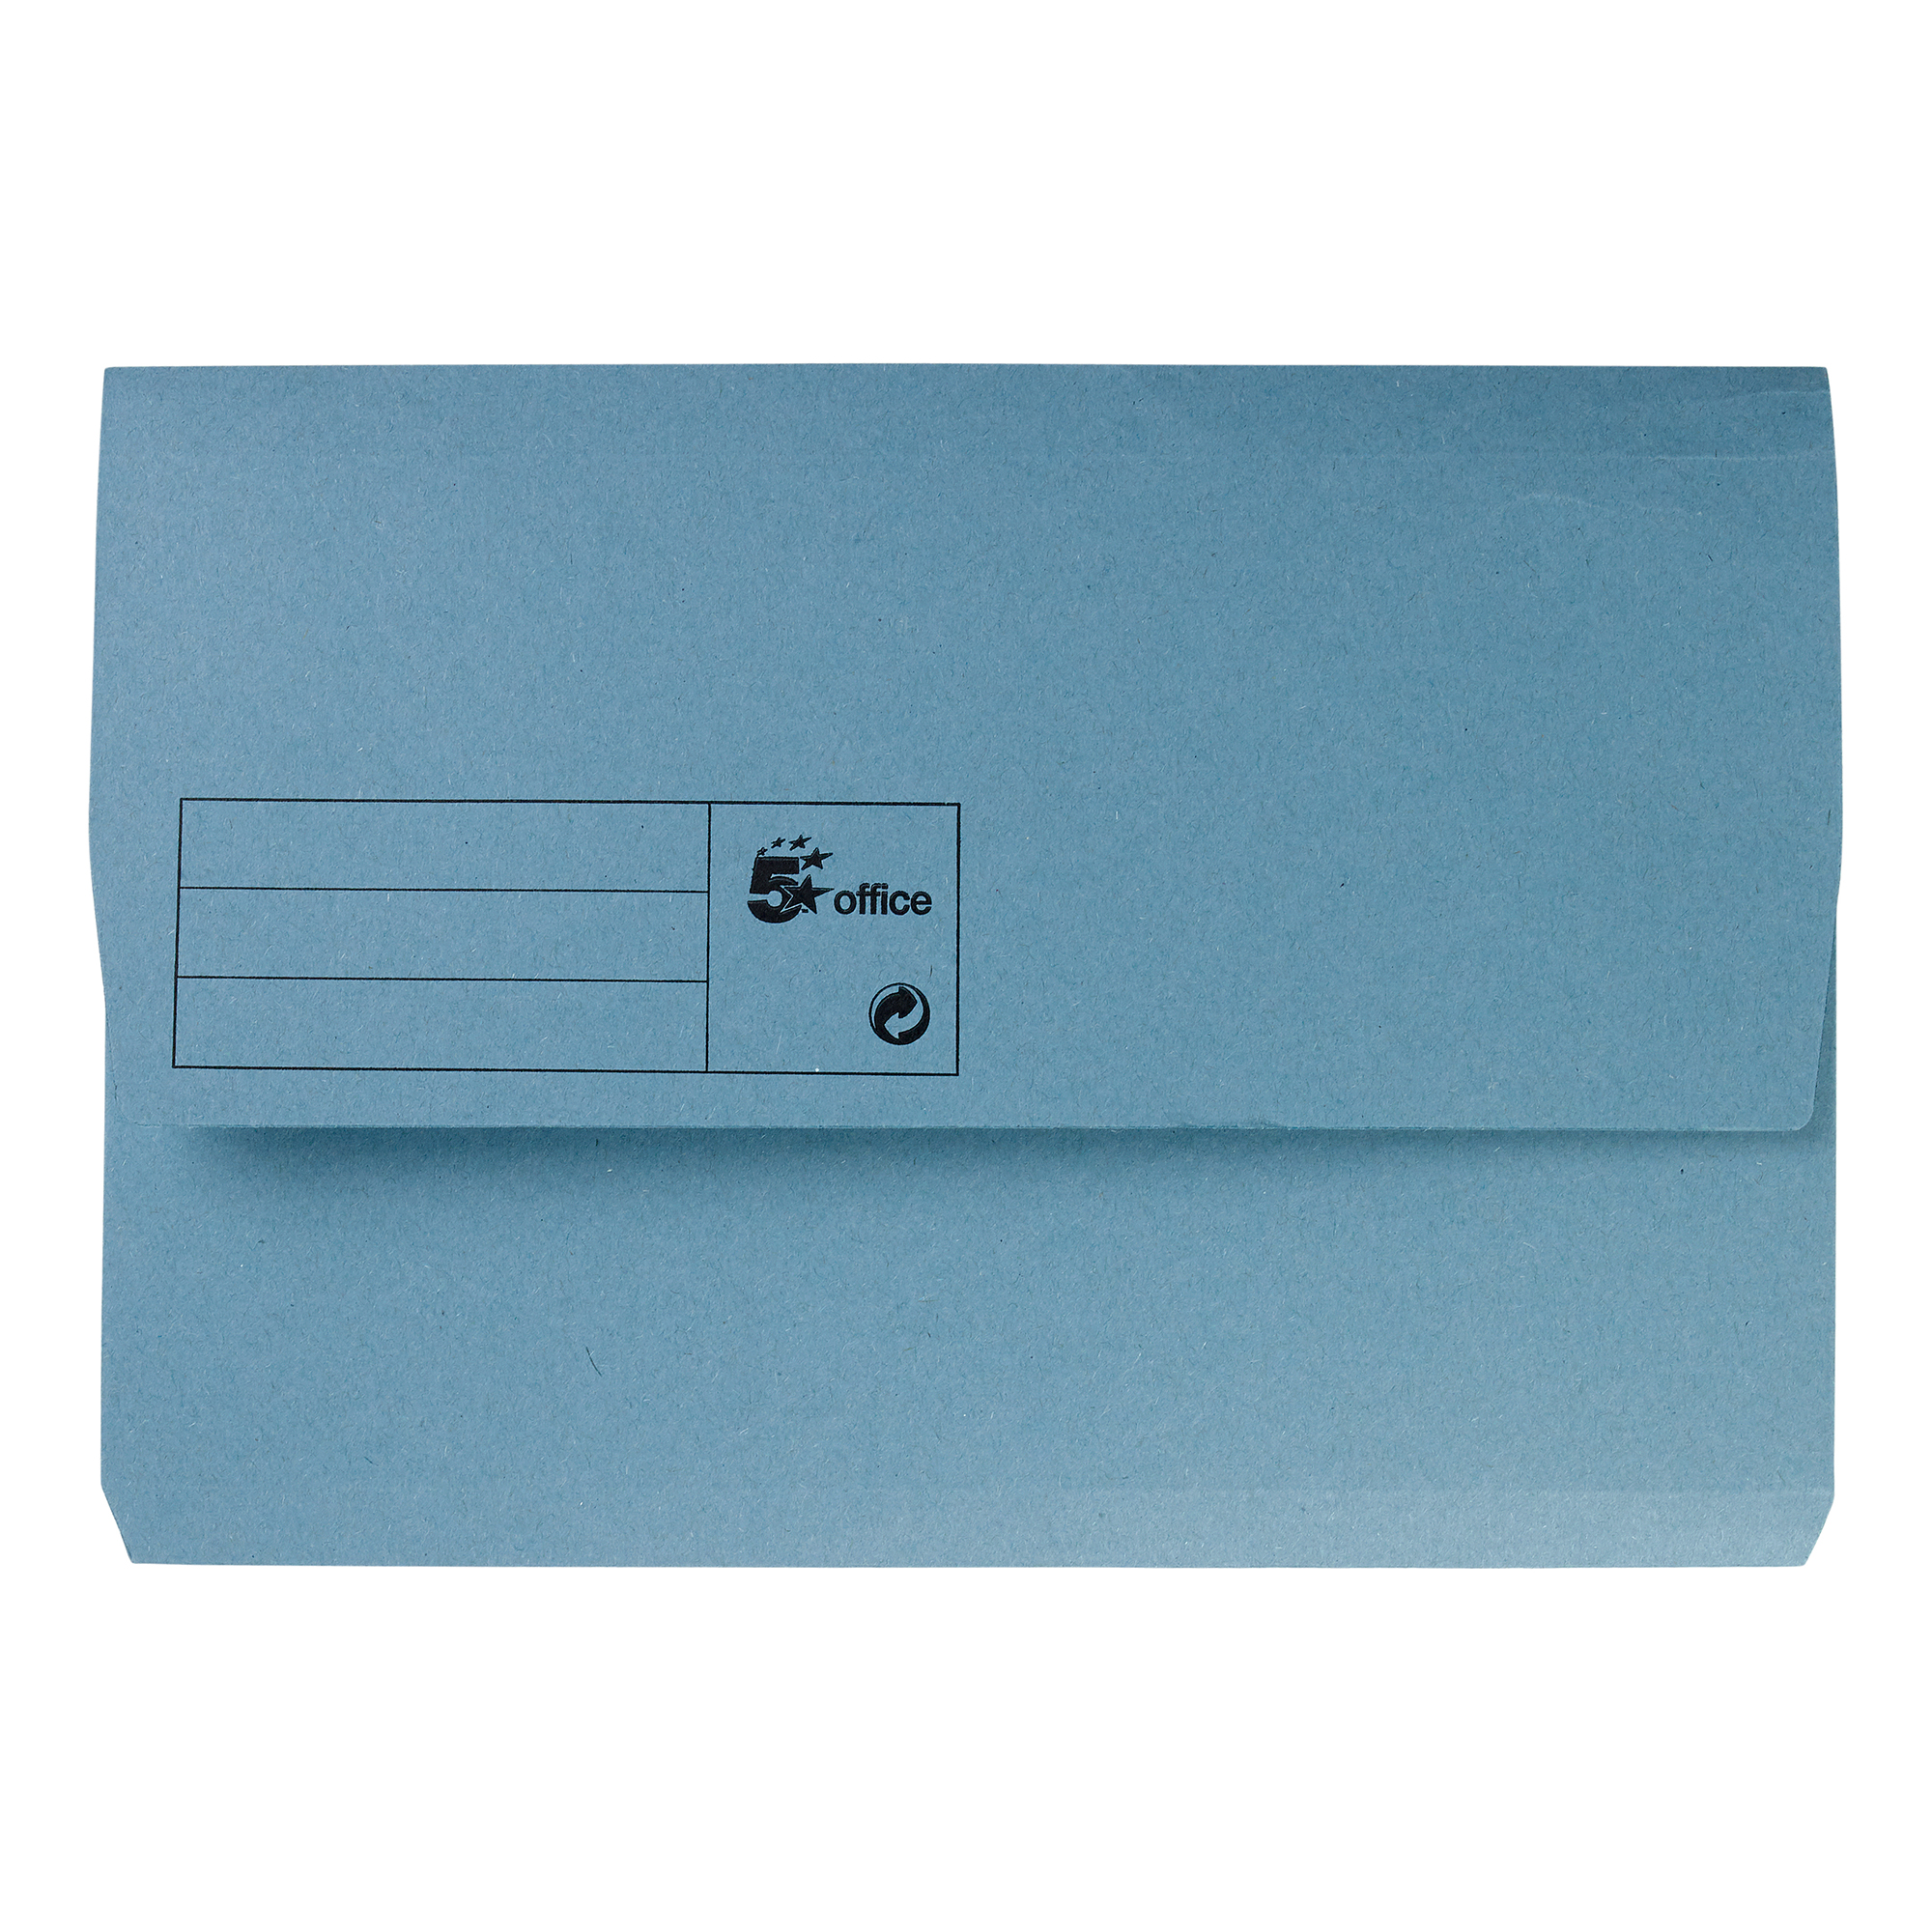 5 Star Office Document Wallet Half Flap 285gsm Capacity 32mm Foolscap Blue [Pack 50]